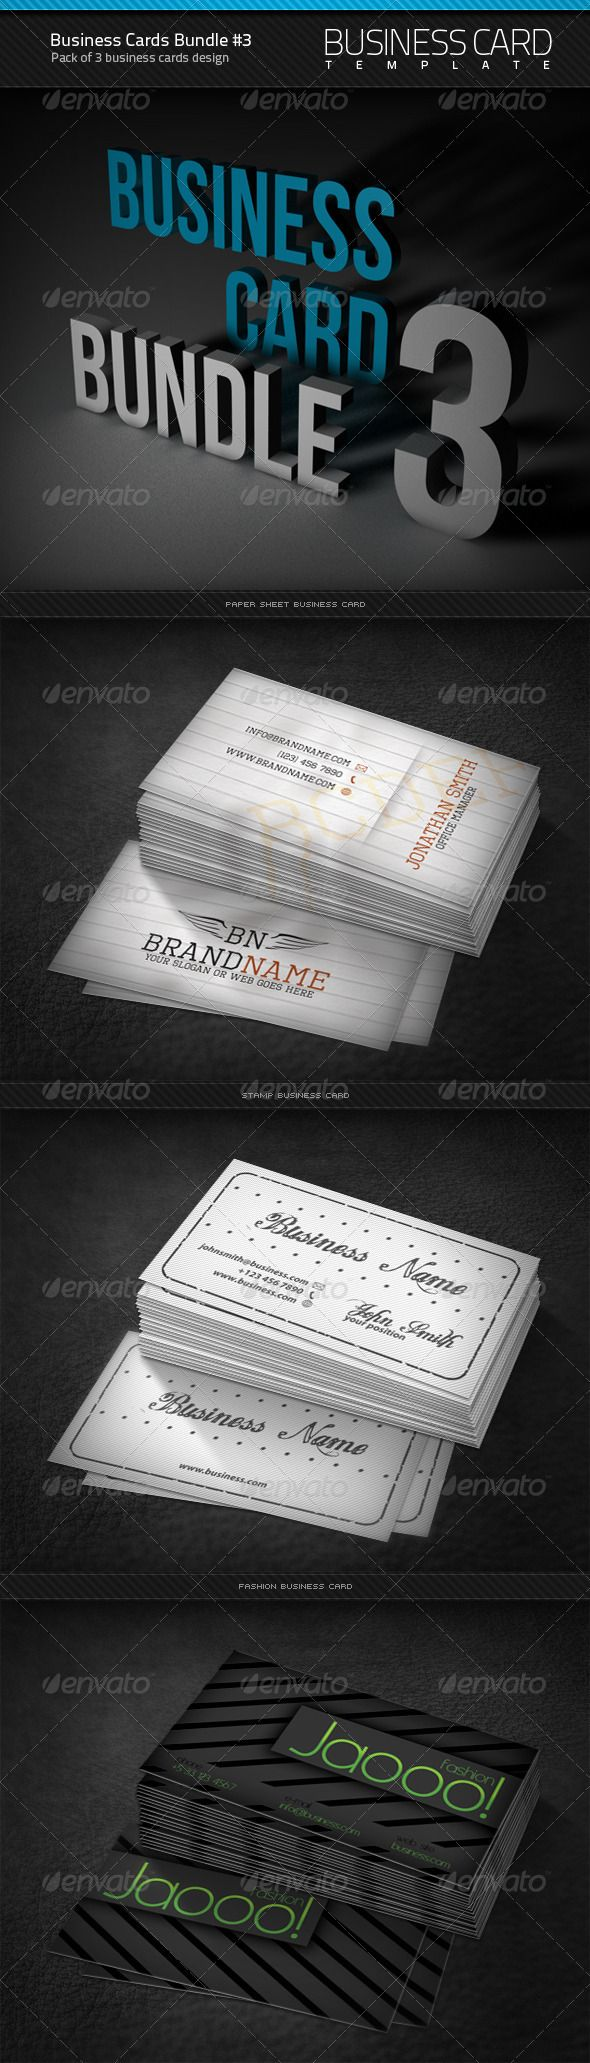 54 best business card designs images on pinterest business card business cards bundle 3 reheart Choice Image